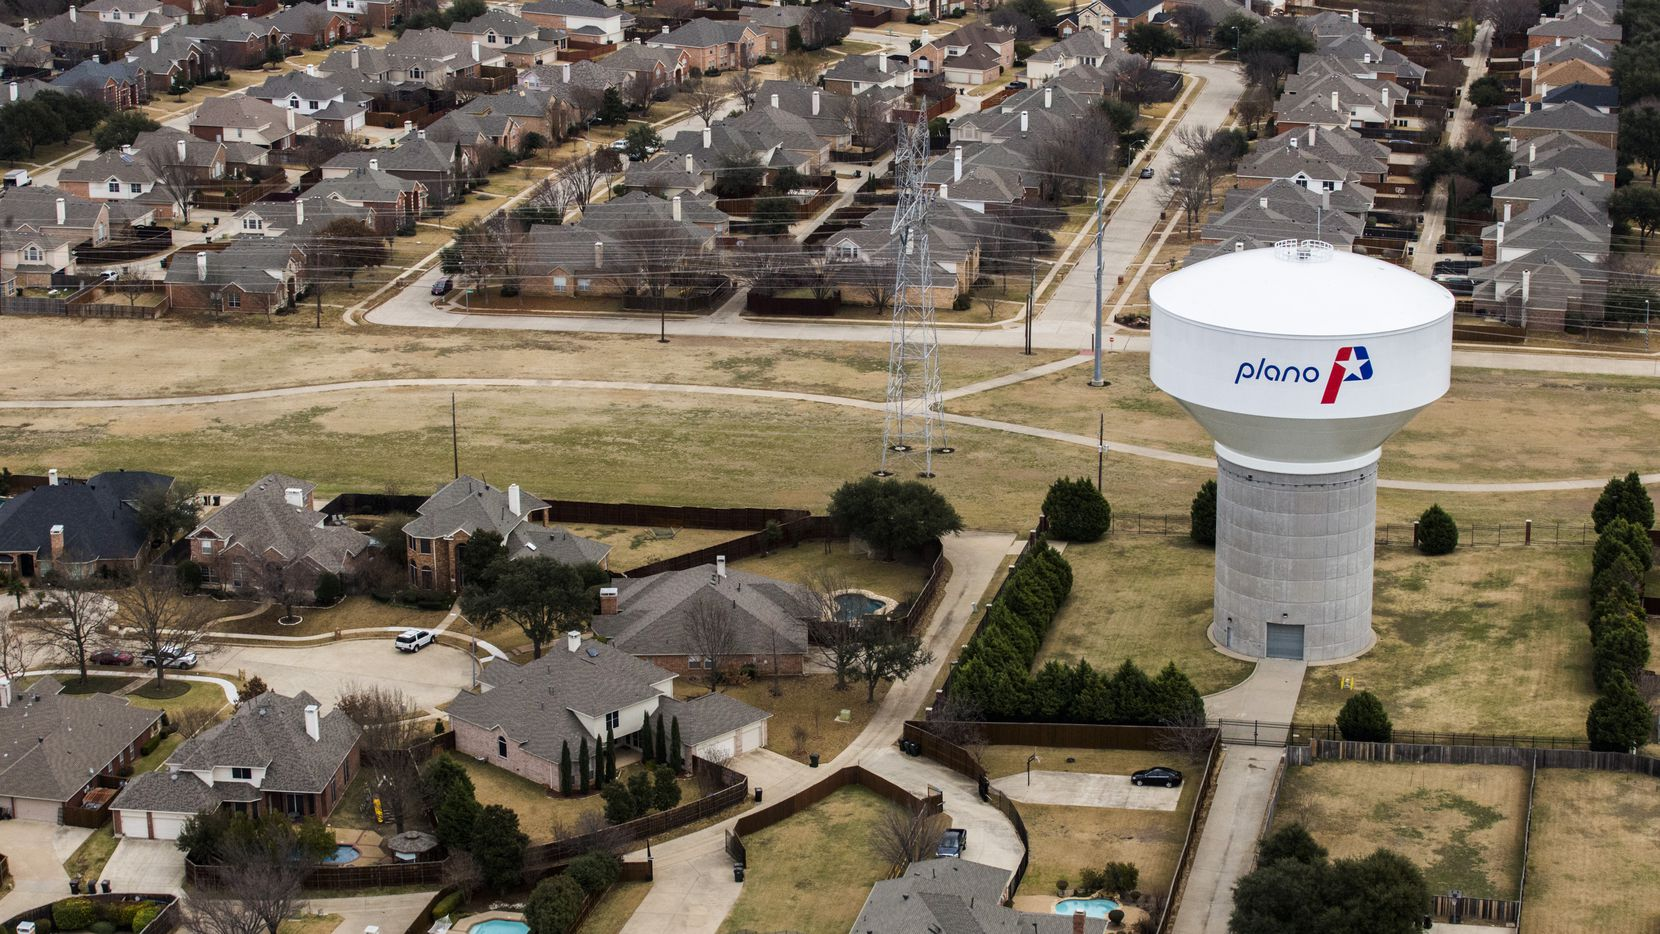 Plano ranked fifth nationally in SmartAsset's annual top homebuying listing.